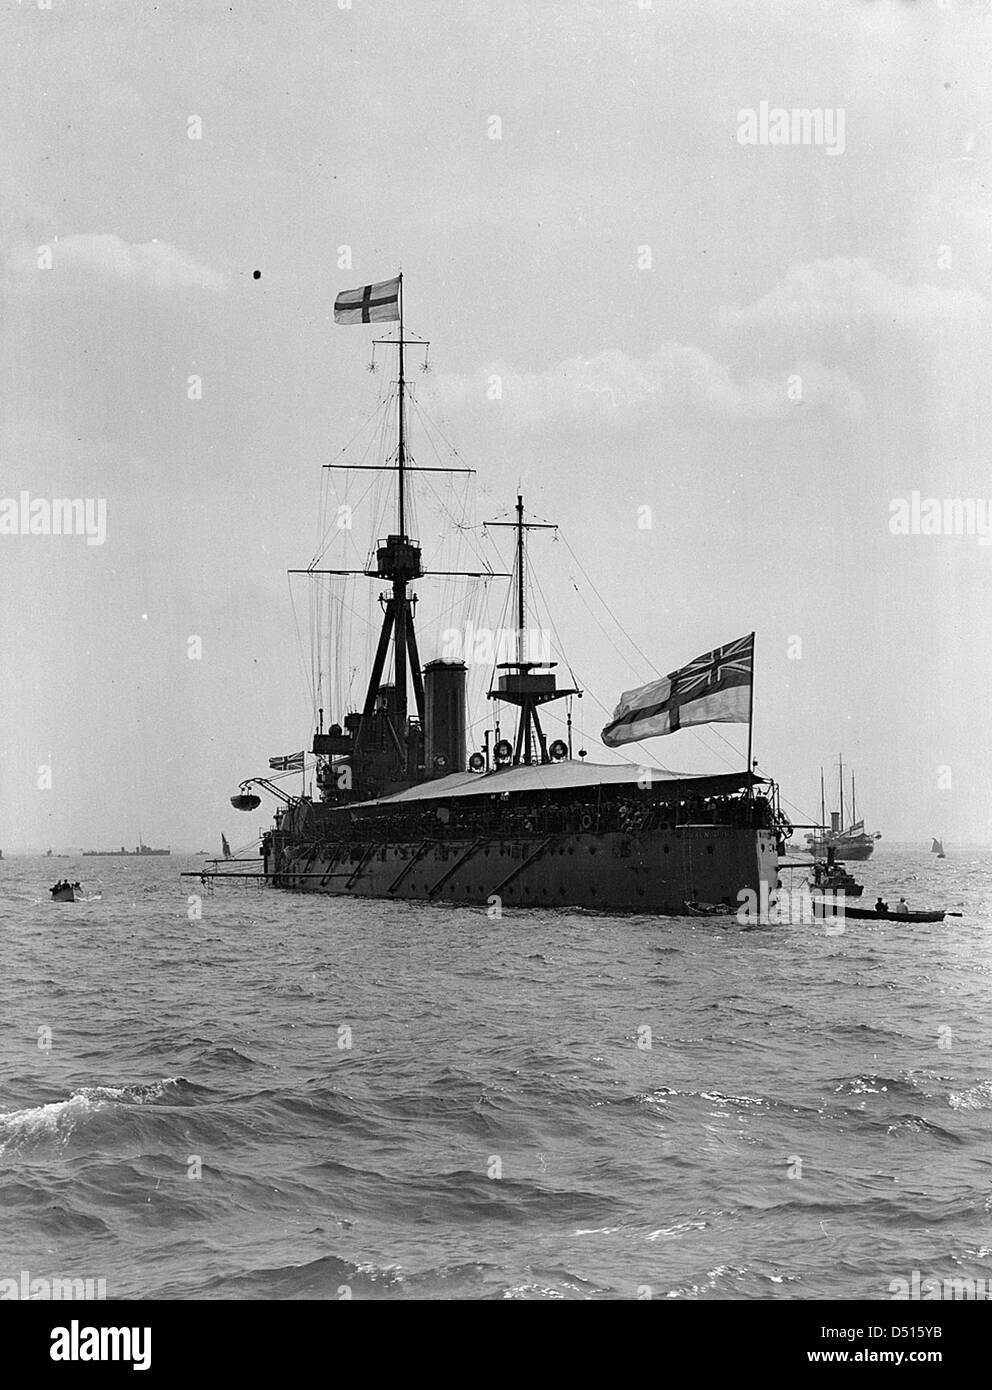 HMS 'Dreadnought' with awning rigged, anchored in the Thames Estuary - Stock Image